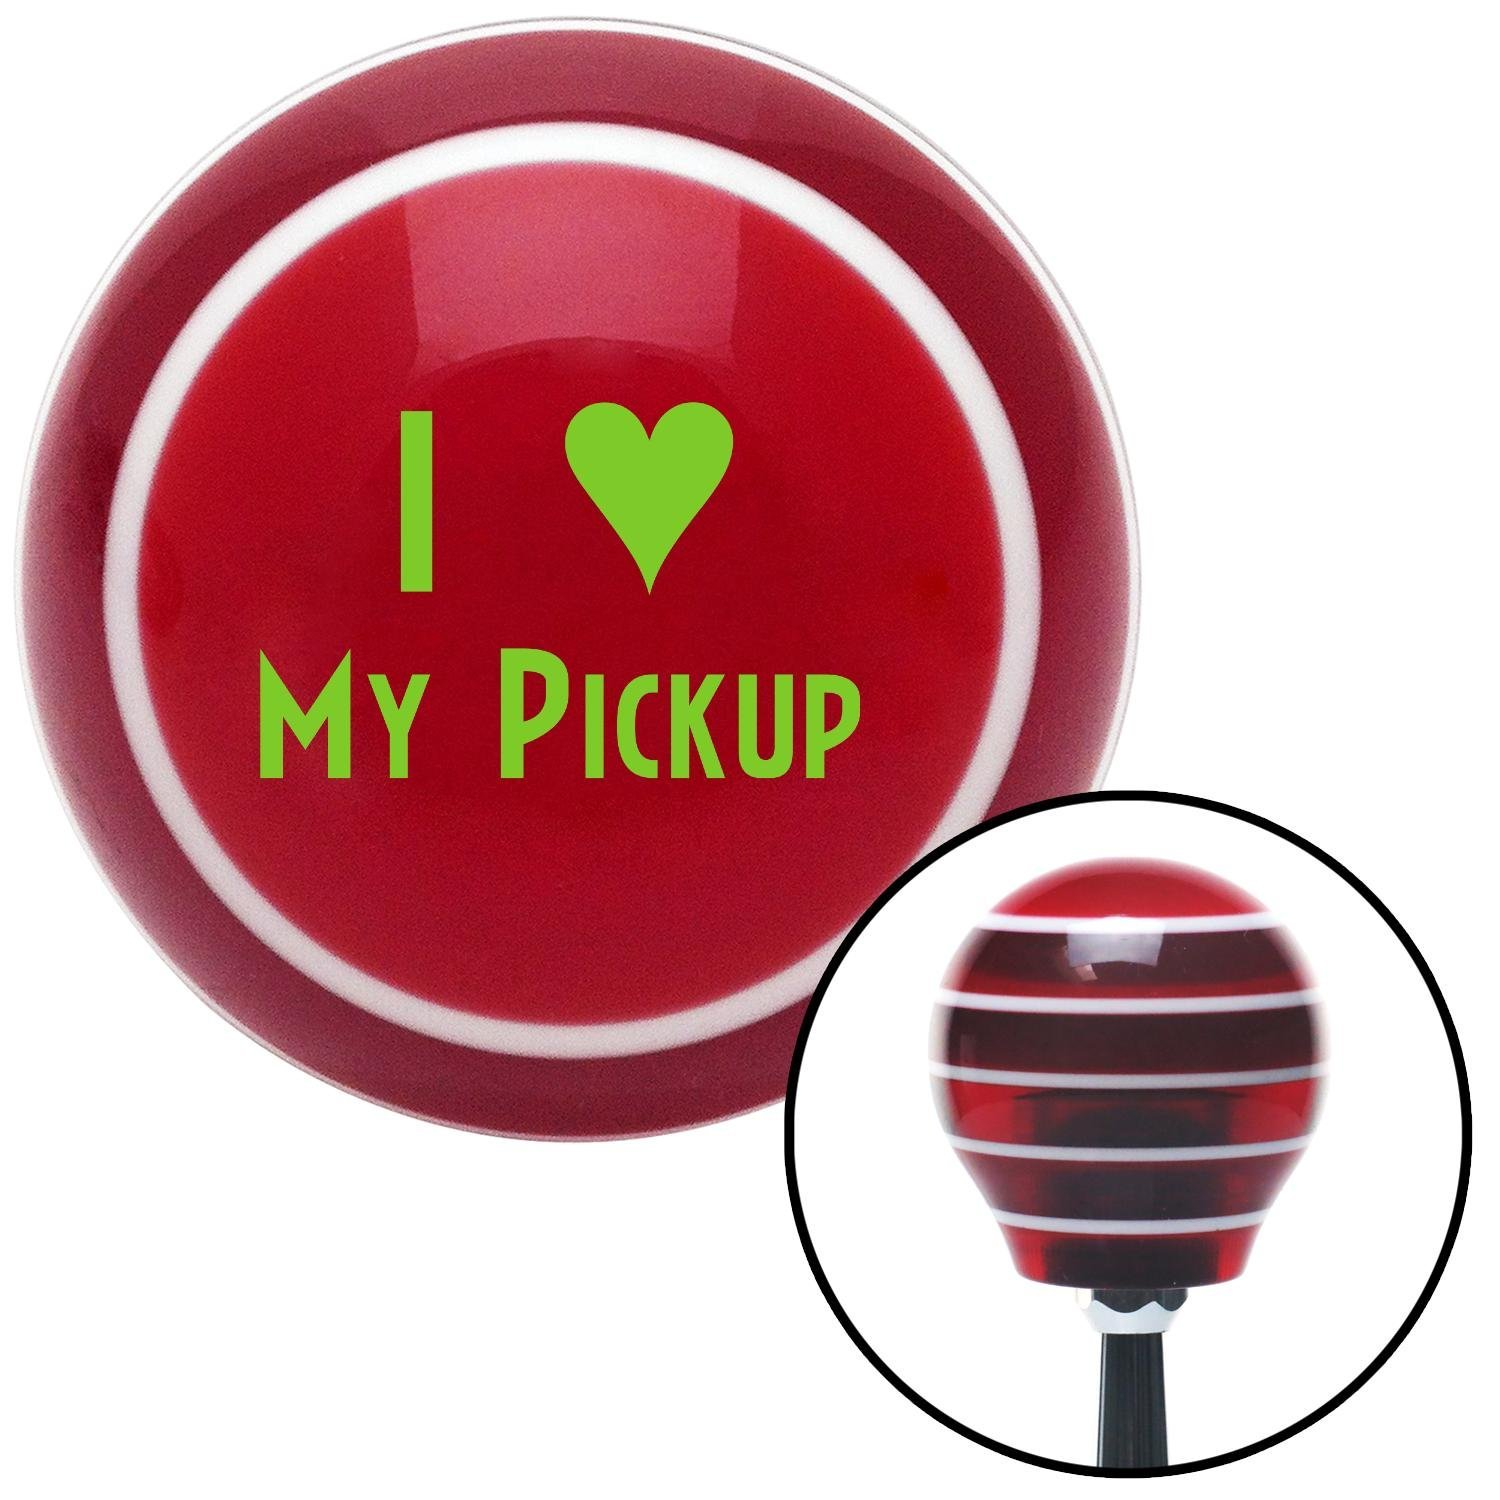 Green I 3 My Pickup American Shifter 114379 Red Stripe Shift Knob with M16 x 1.5 Insert